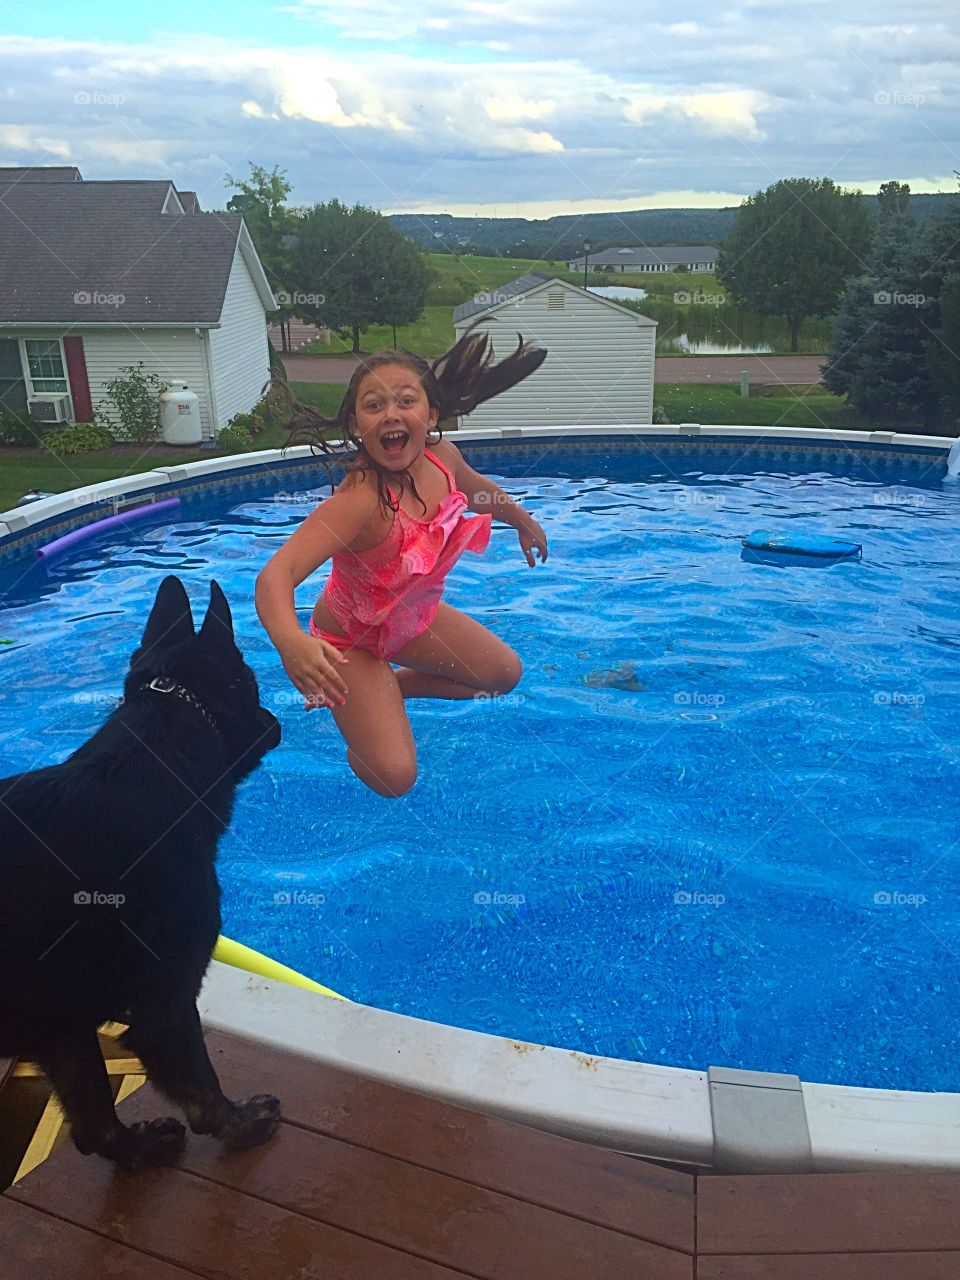 Girl with dog at pool side